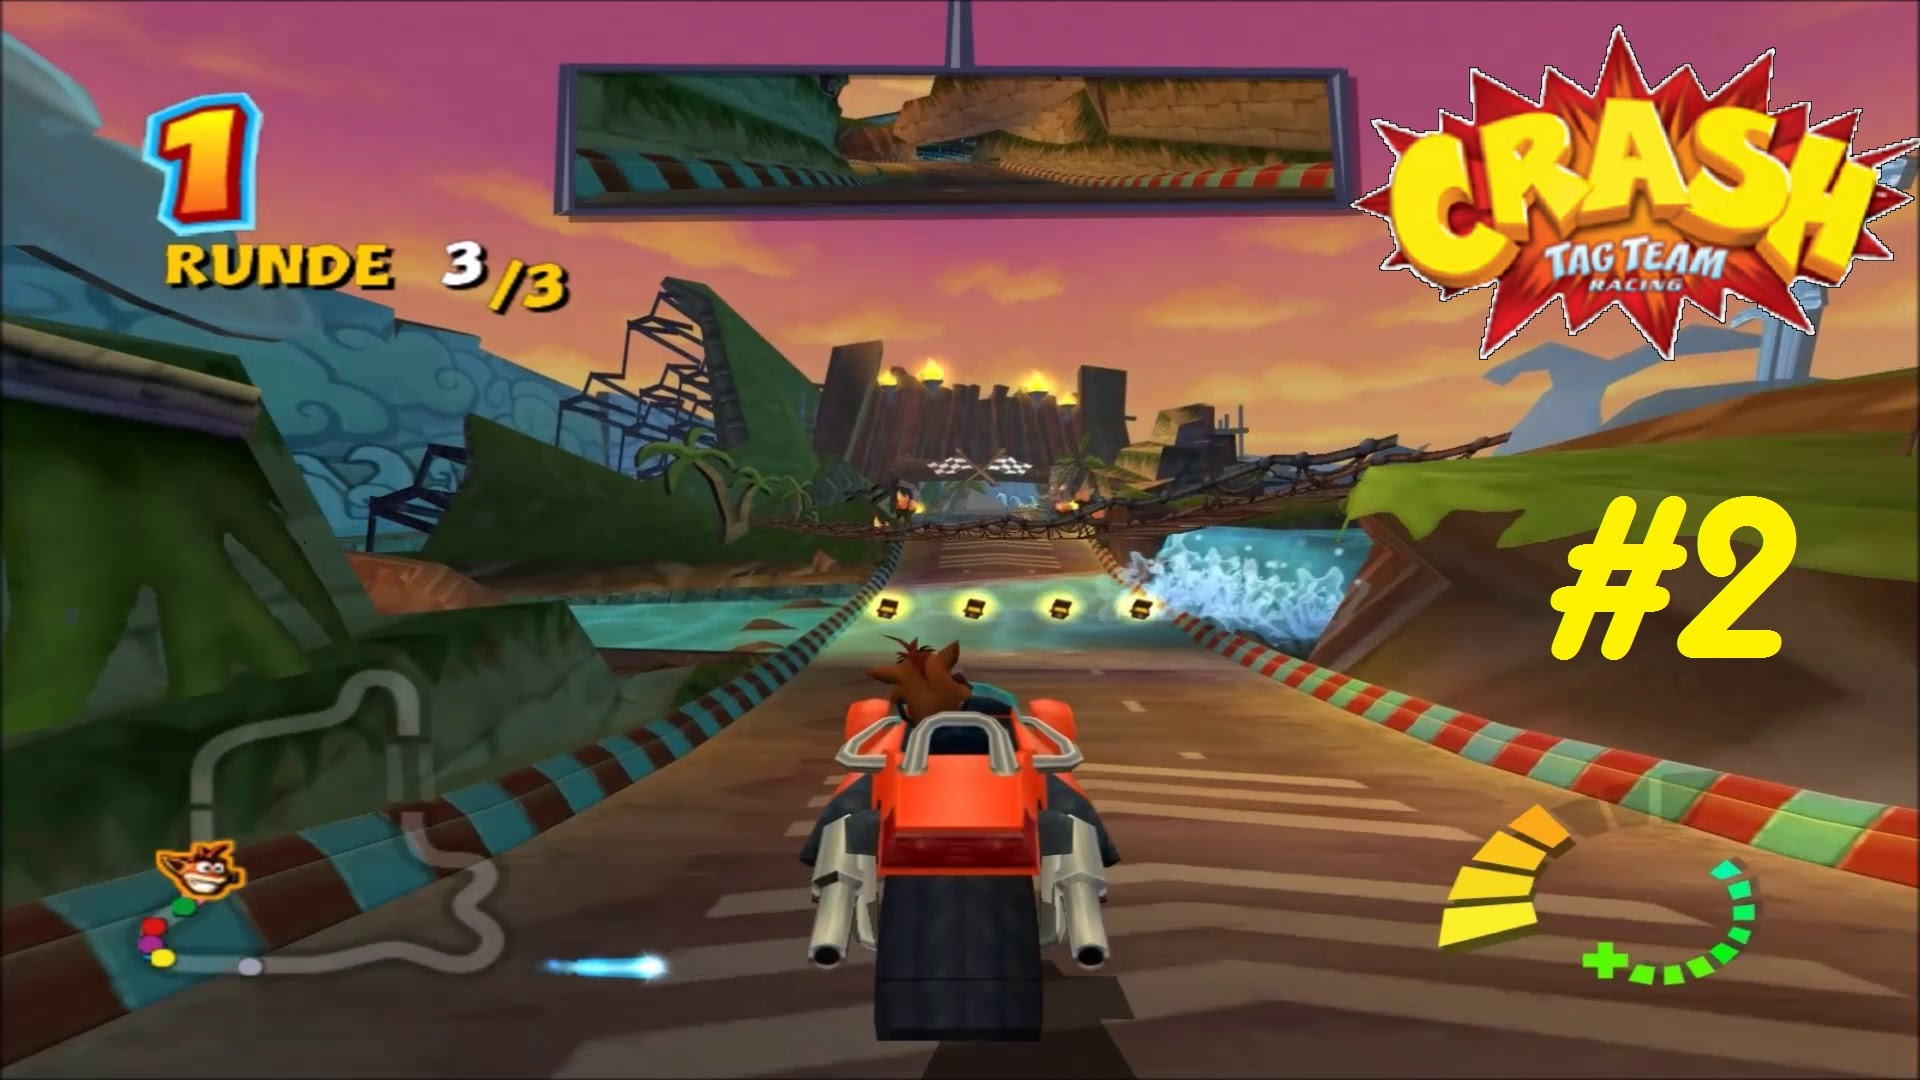 Crash Tag Team Racing wallpapers, Video Game, HQ Crash Tag